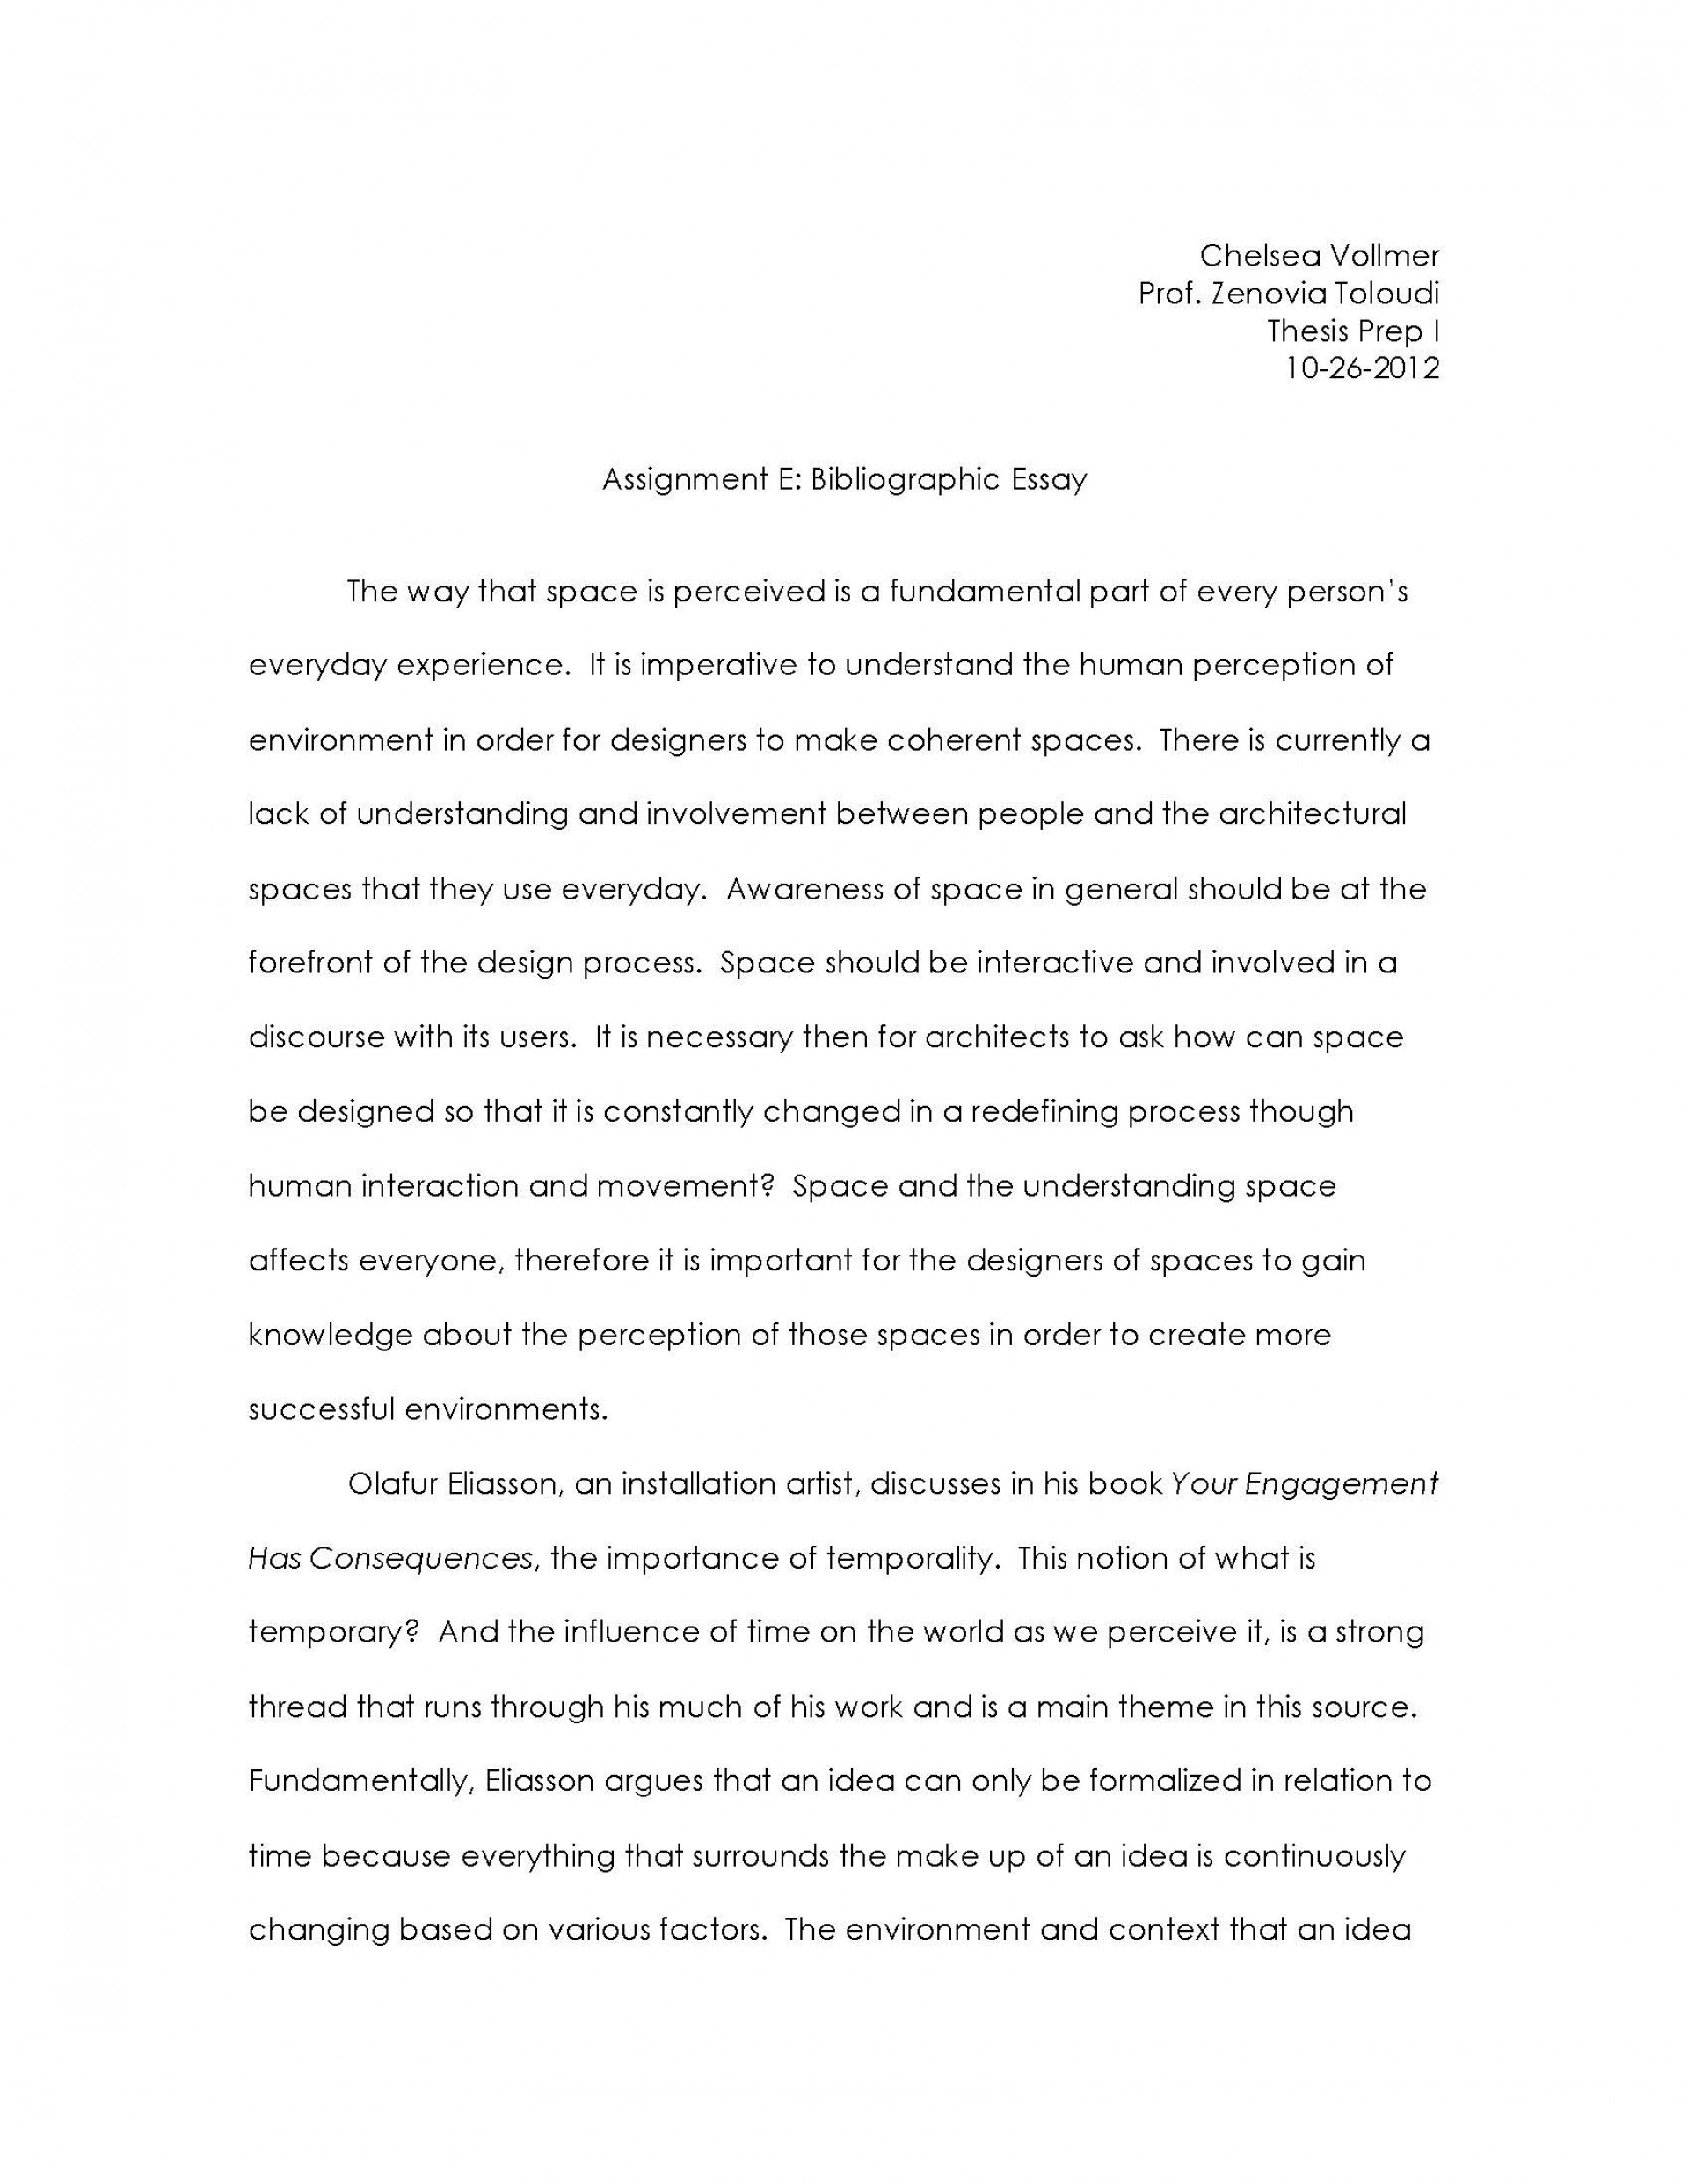 013 Essay Example Assignment E Page 12 Satire Fearsome Essays Satirical Topics For High School Examples On Gun Control 1920